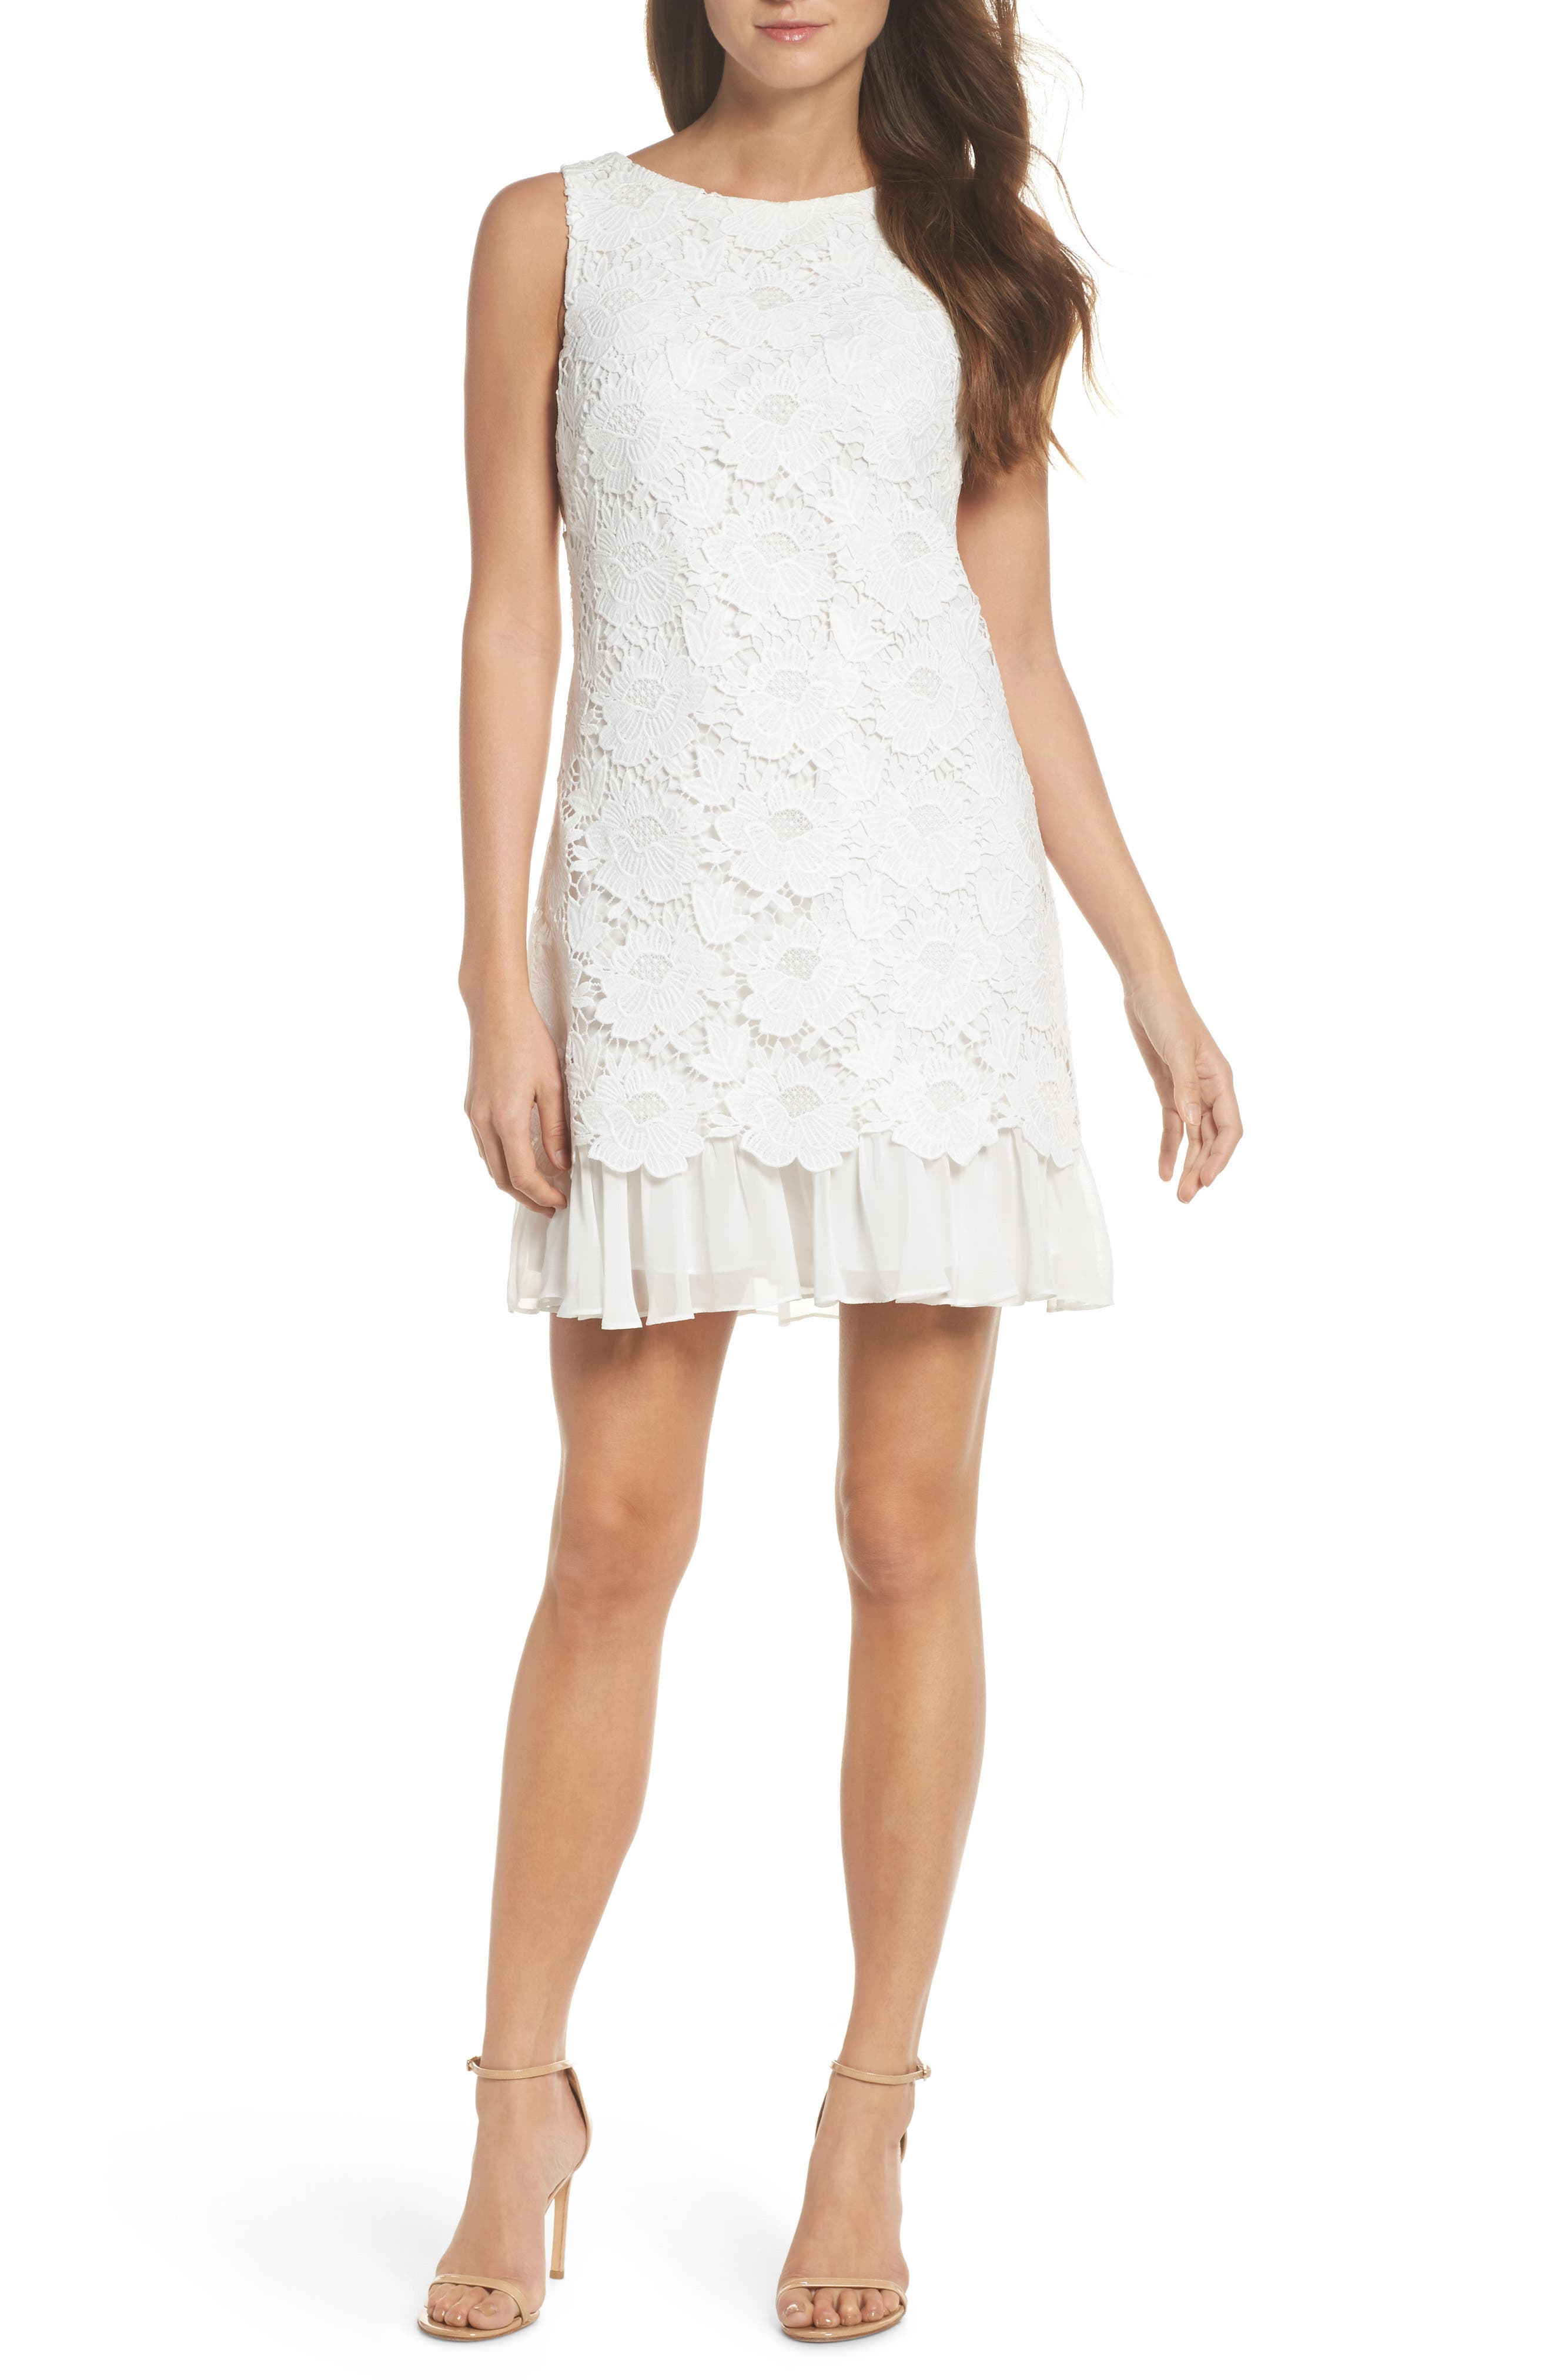 White Confirmation Dresses for Teenagers